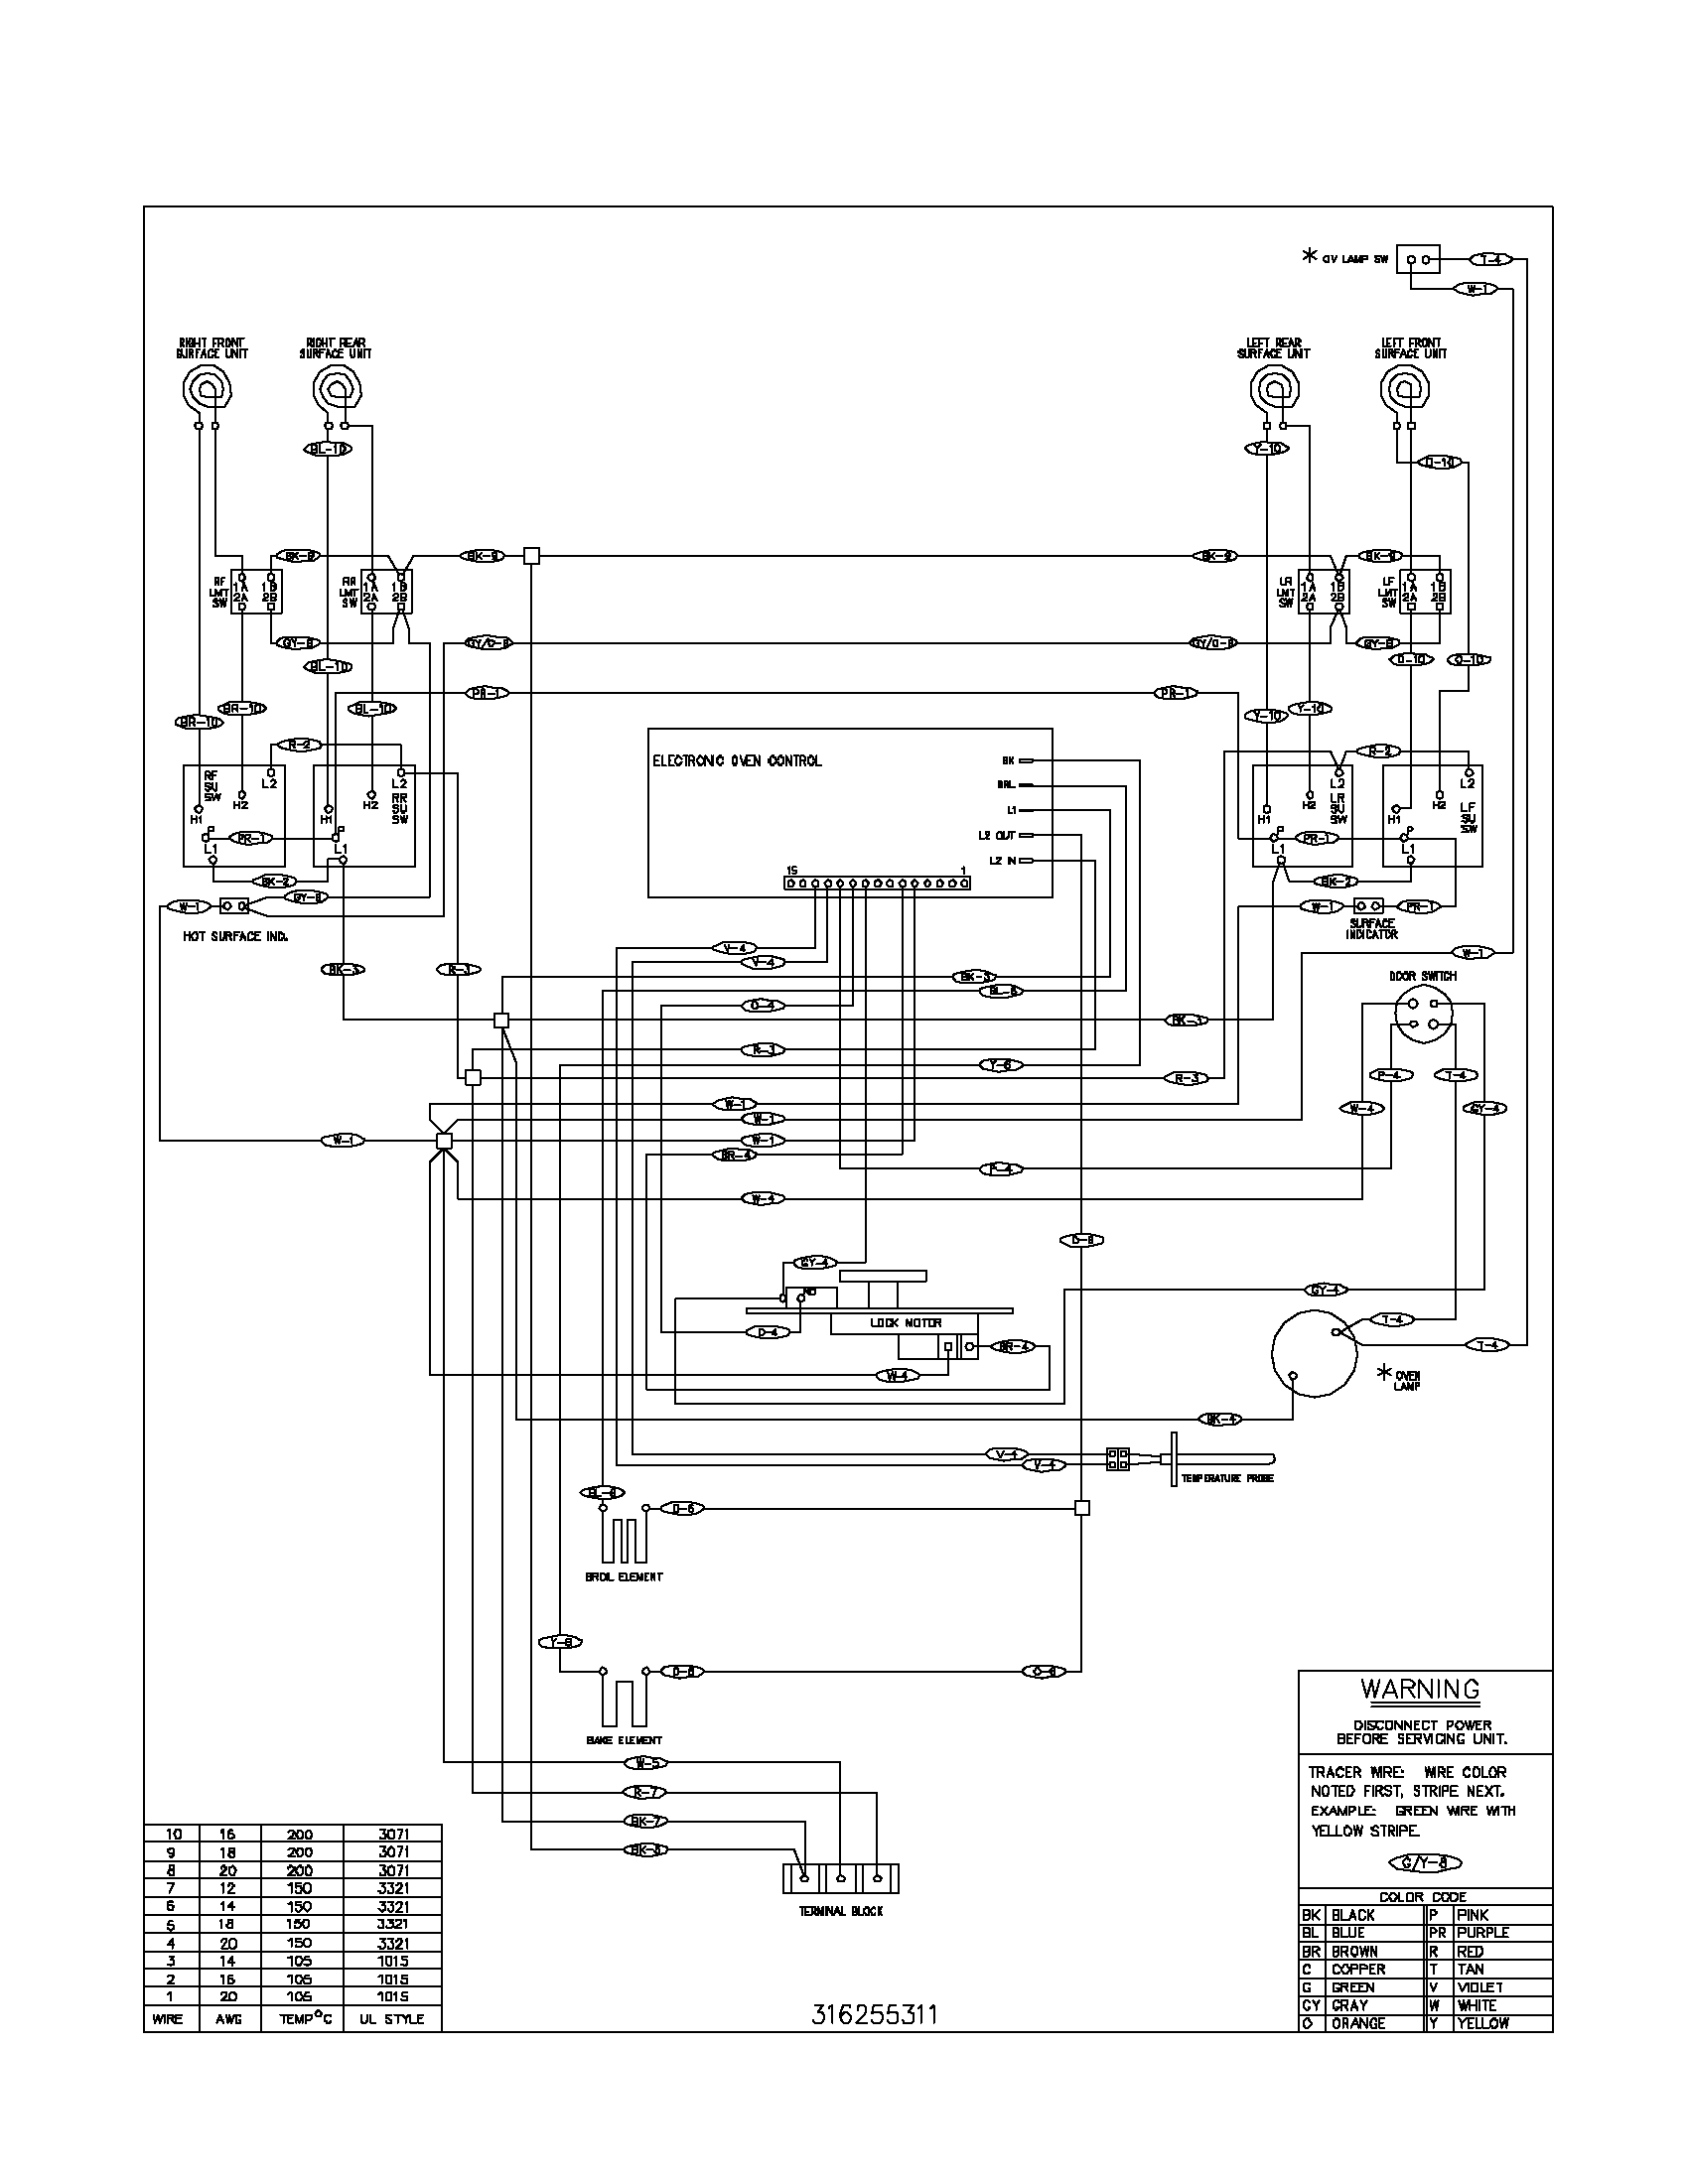 Kymco Scooter Cdi Wiring Diagram